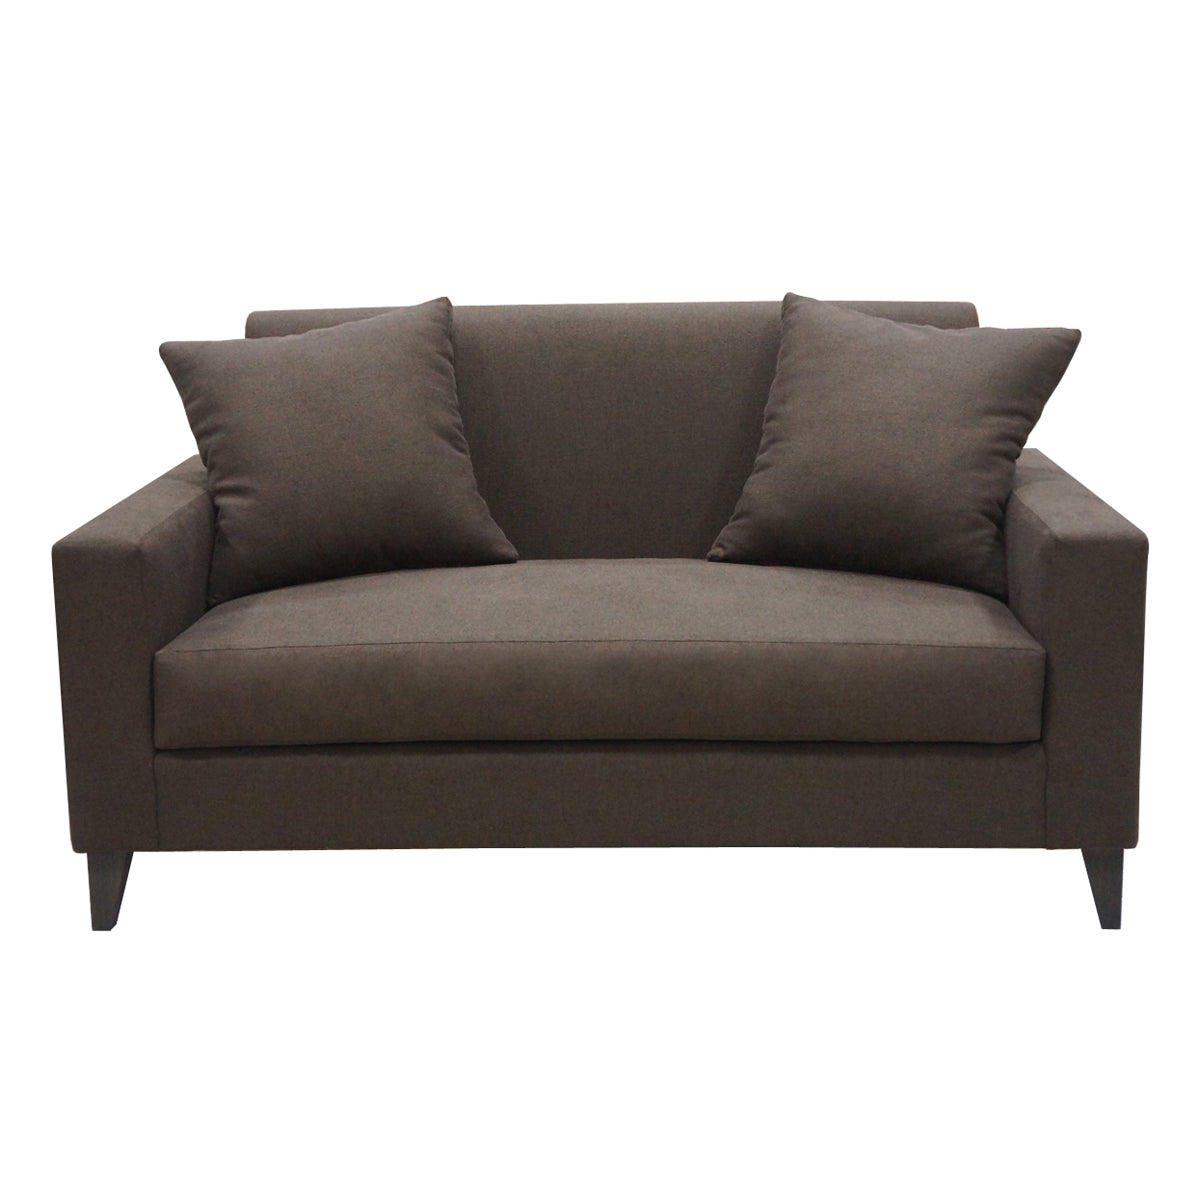 Tom Eco Friendly Sofa No Chemical Flame Retardants